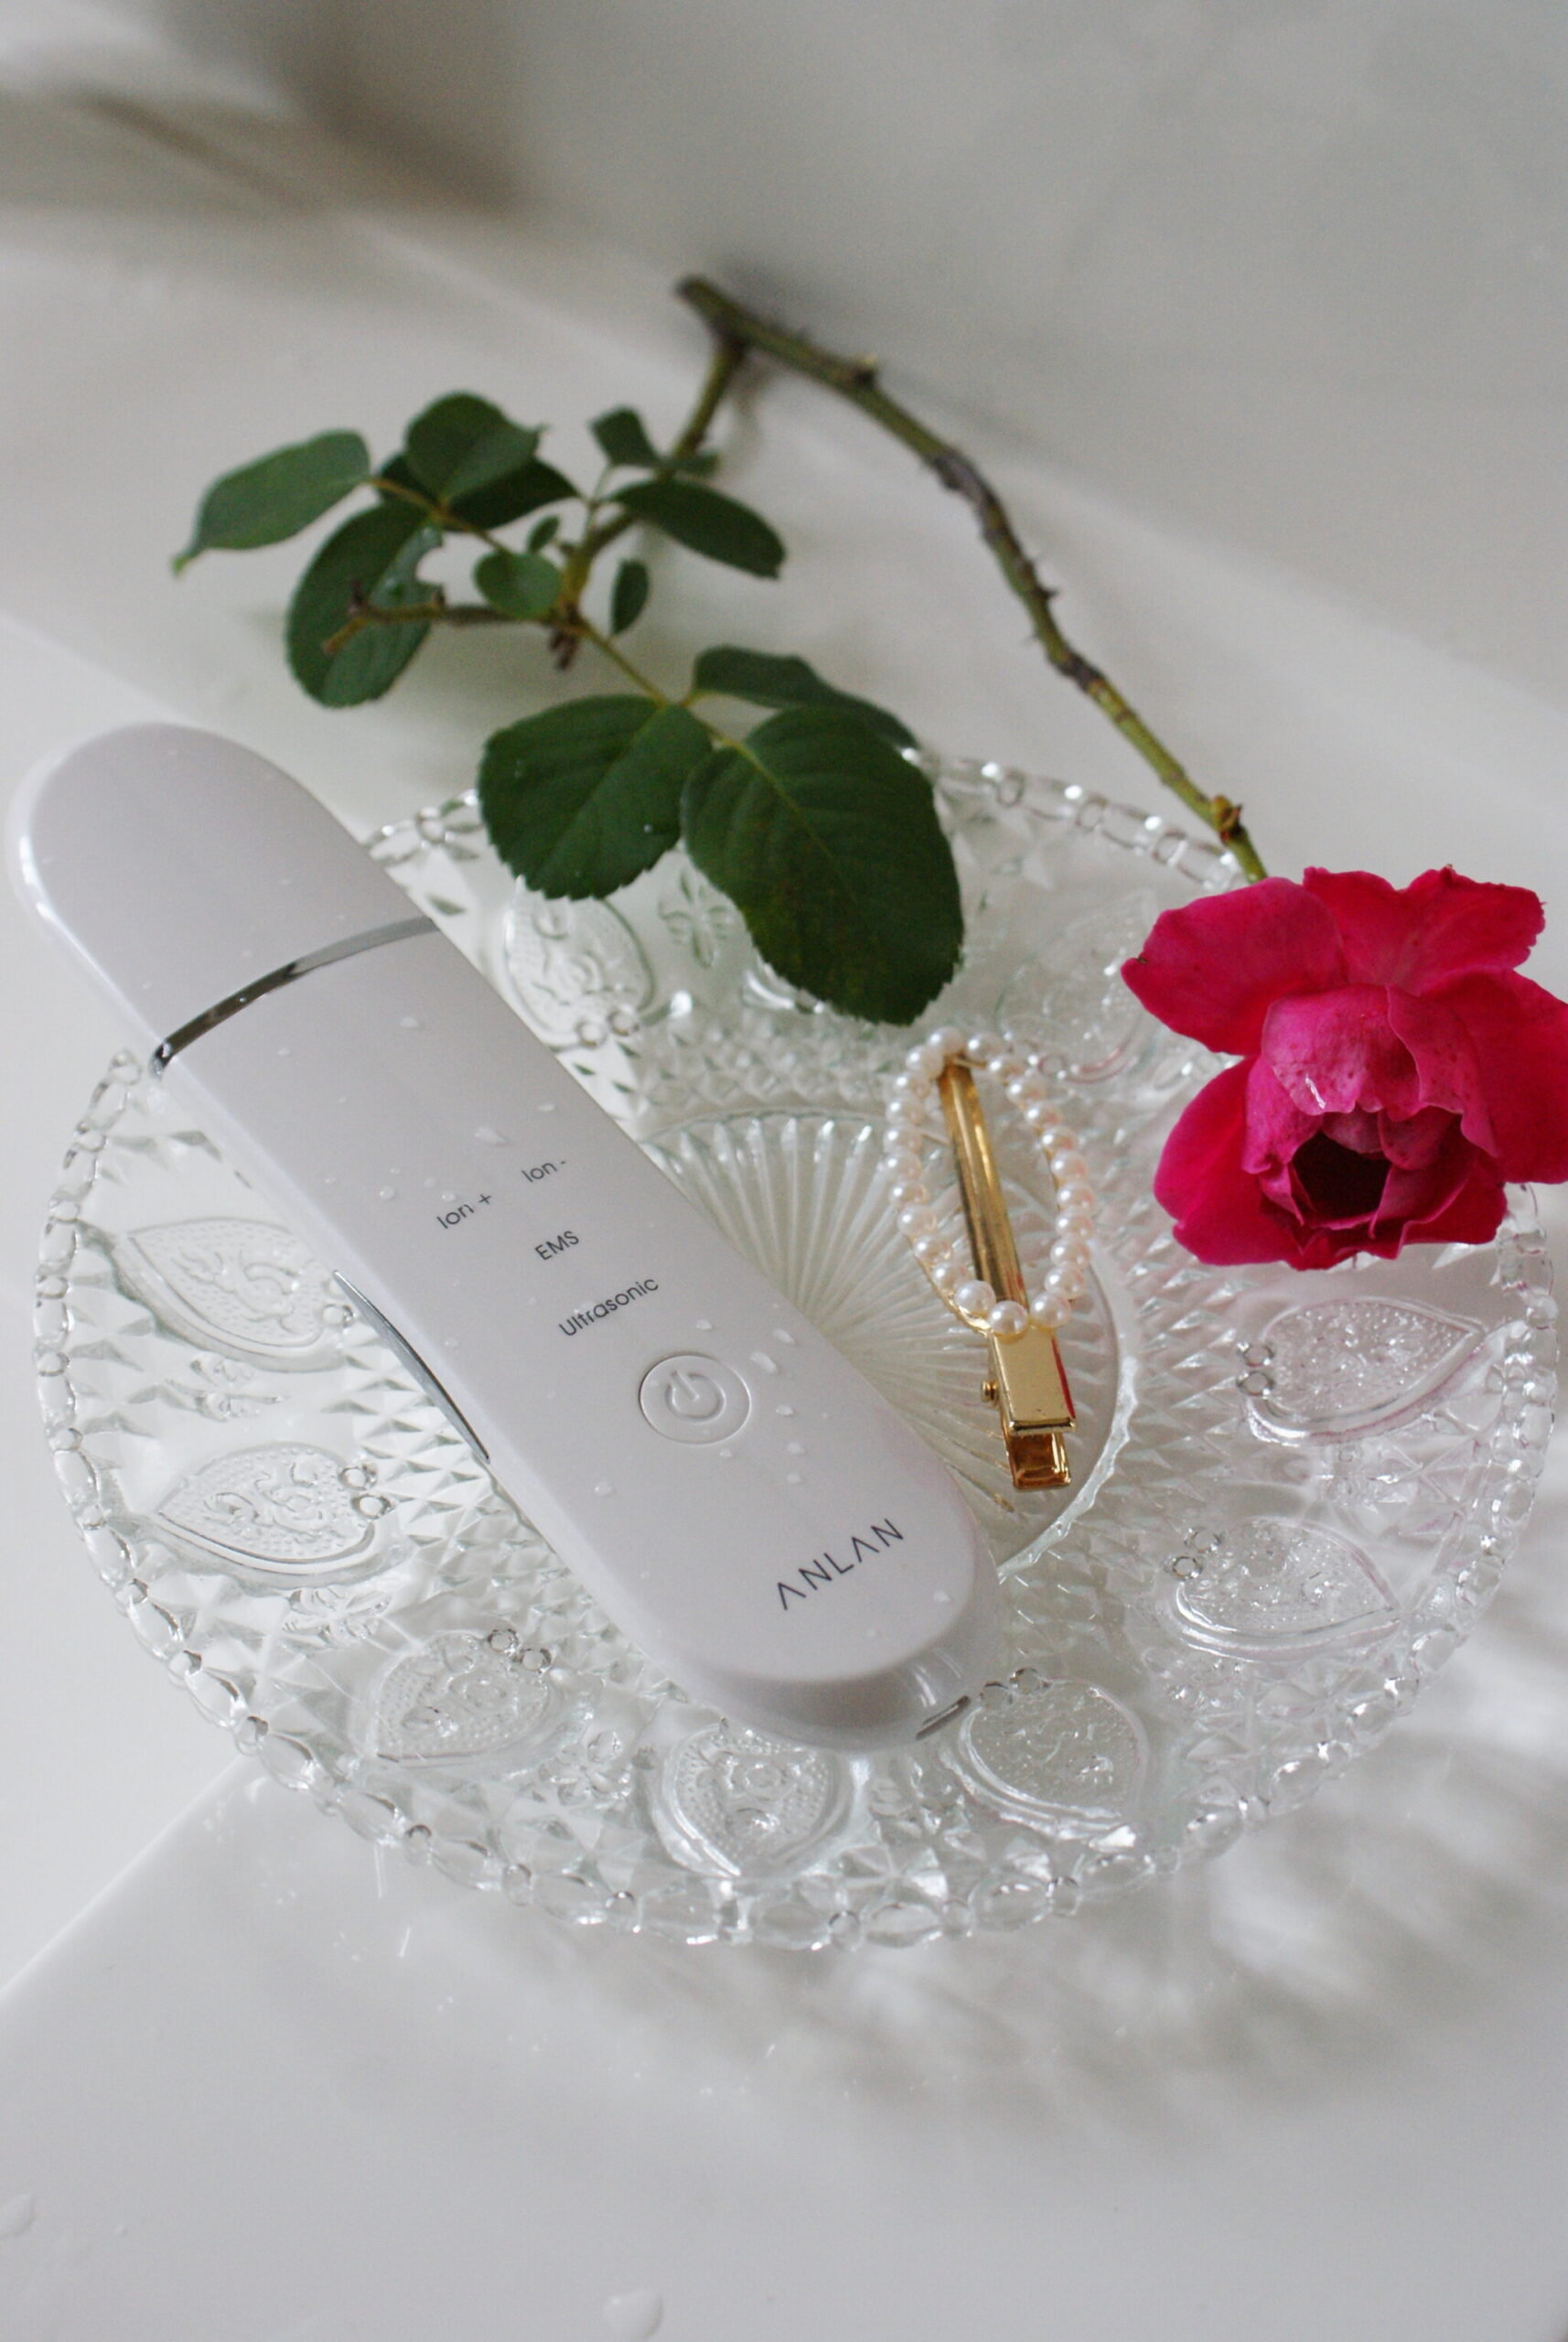 anlan skincare device scrub ion ultrasonic tested review tried